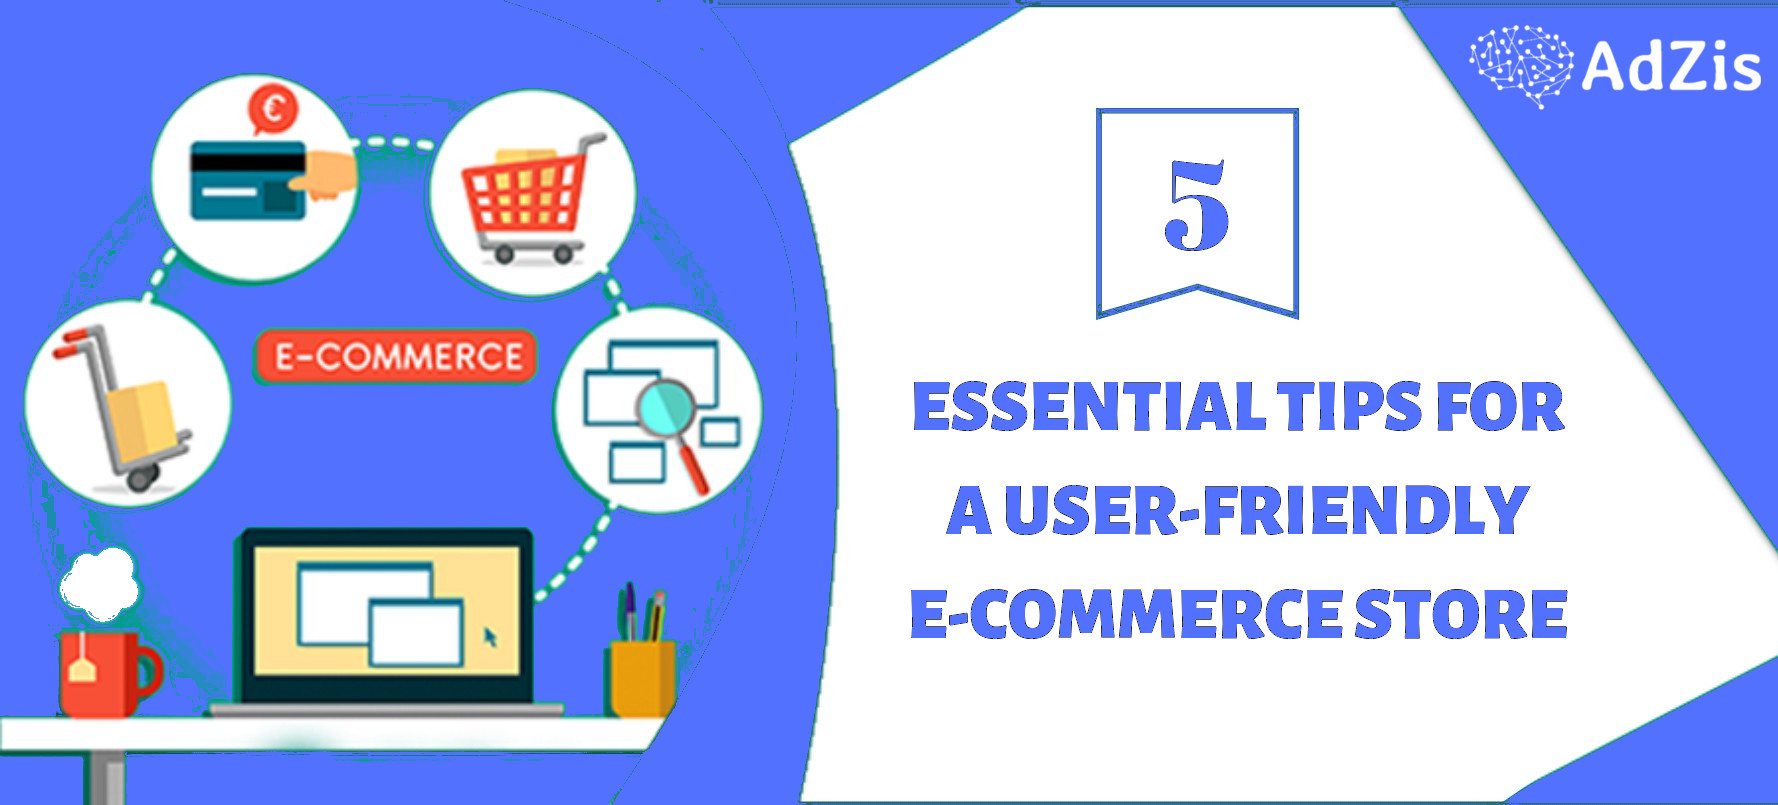 5 Essential Tips for a User-Friendly E-Commerce Store!